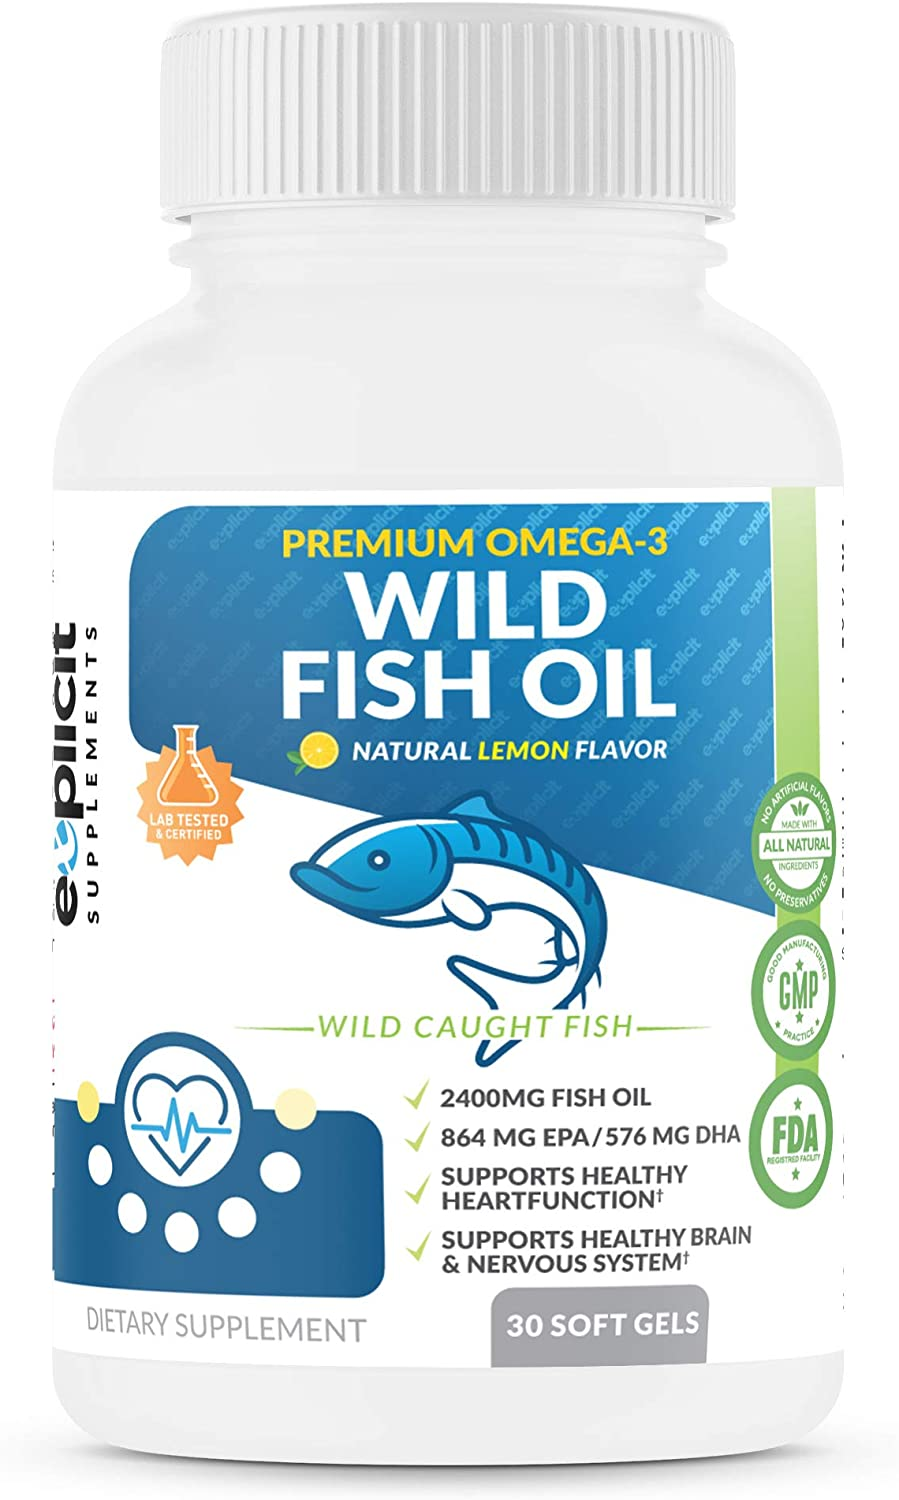 Wild Fish Oil Omega 3 2400mg - EPA/DHA - Burpless, Lemon Flavored Non-GMO, Gluten & Soy Free – 1 Month - eXplicit Supplements